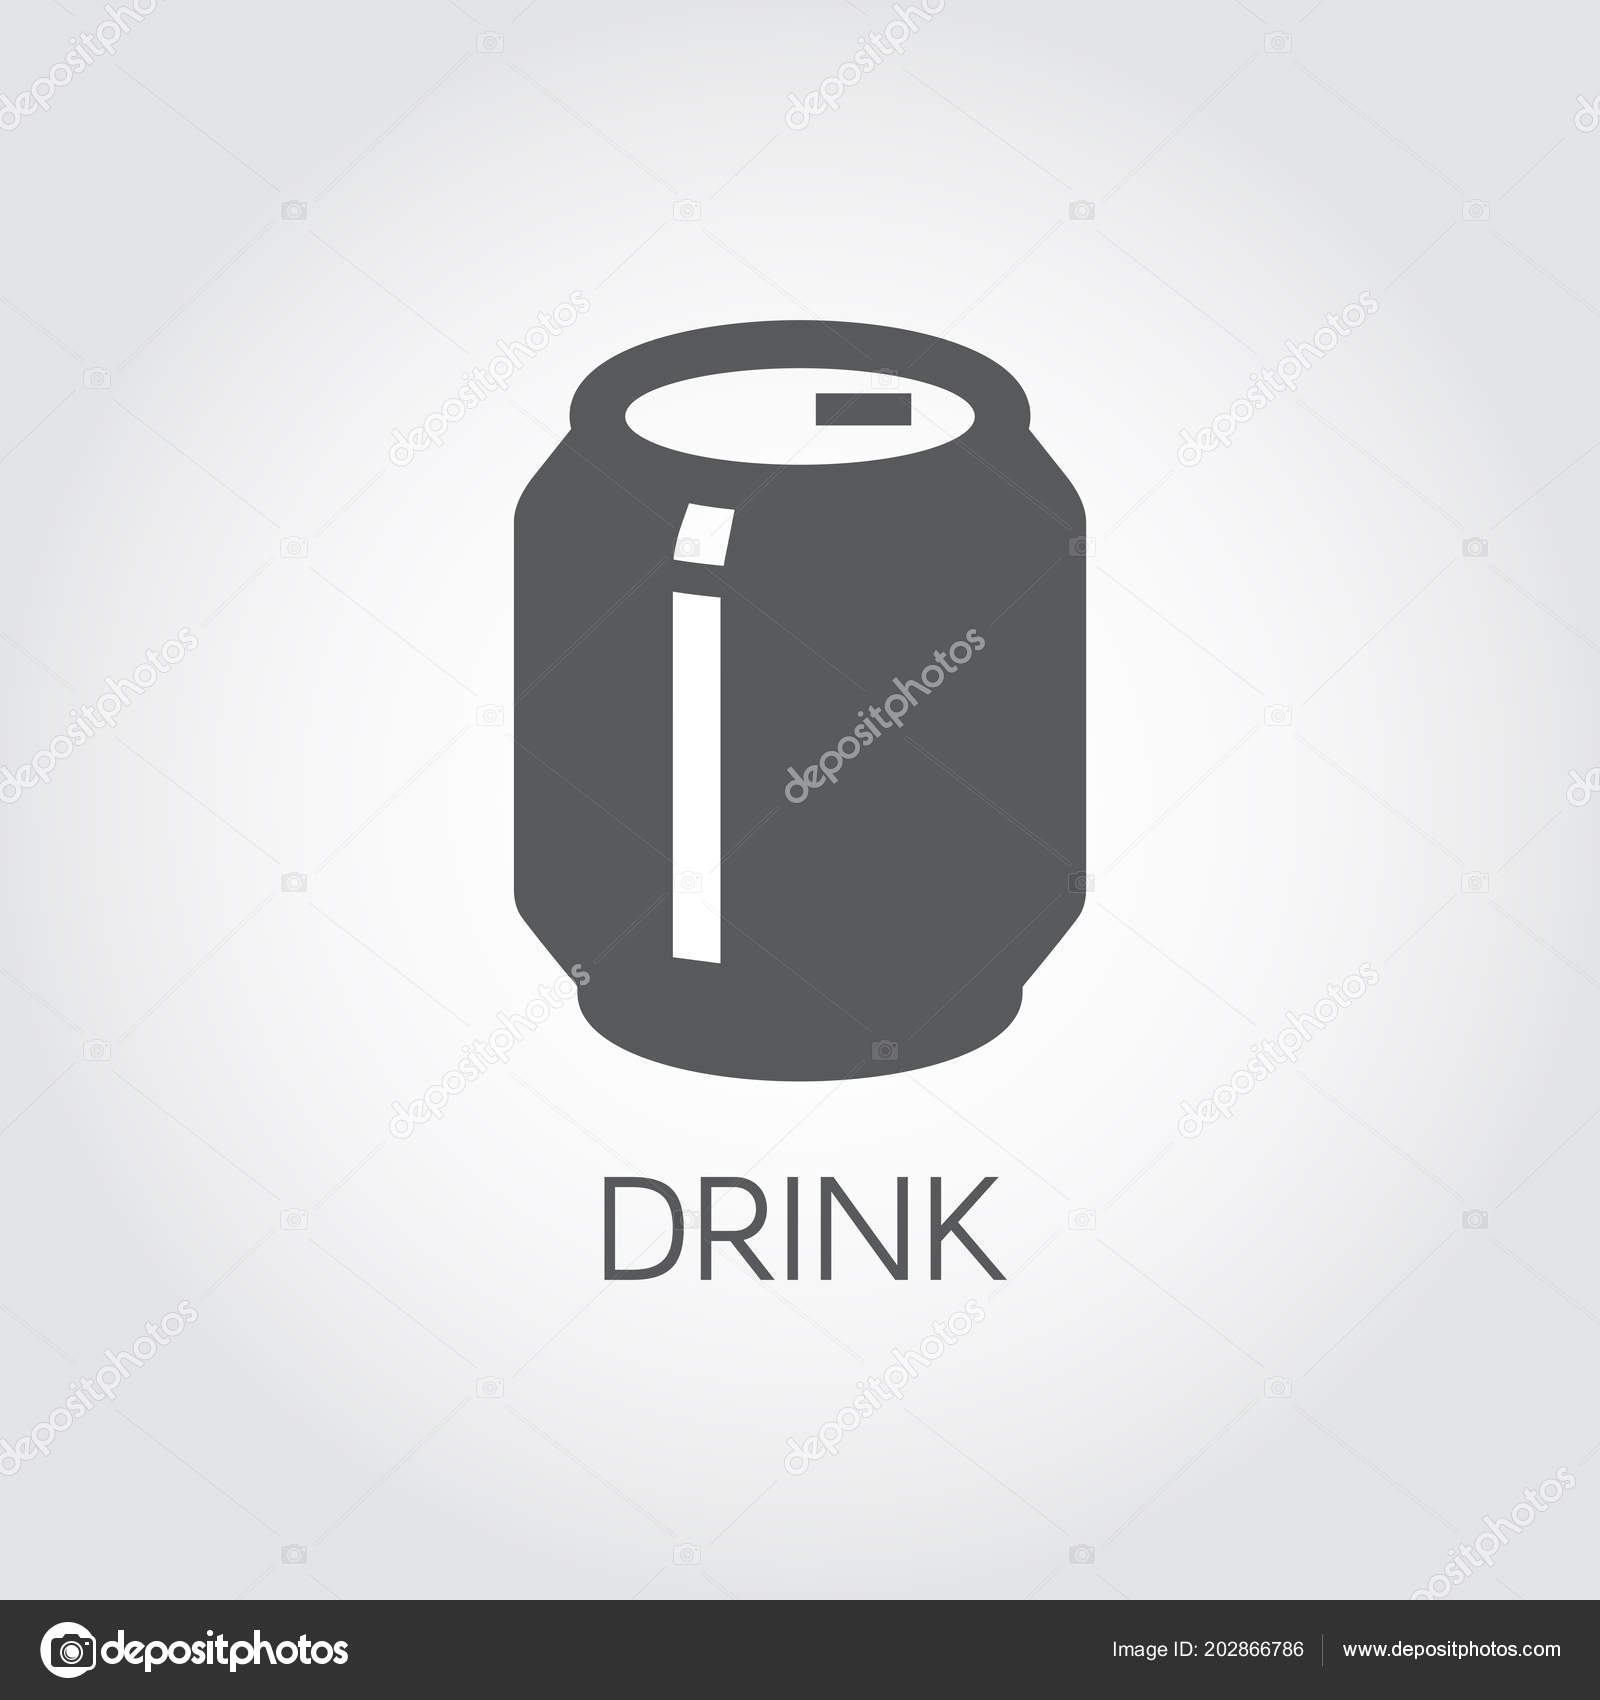 tin can with drink glyph icon. abstract soft drink, beer or lemonade